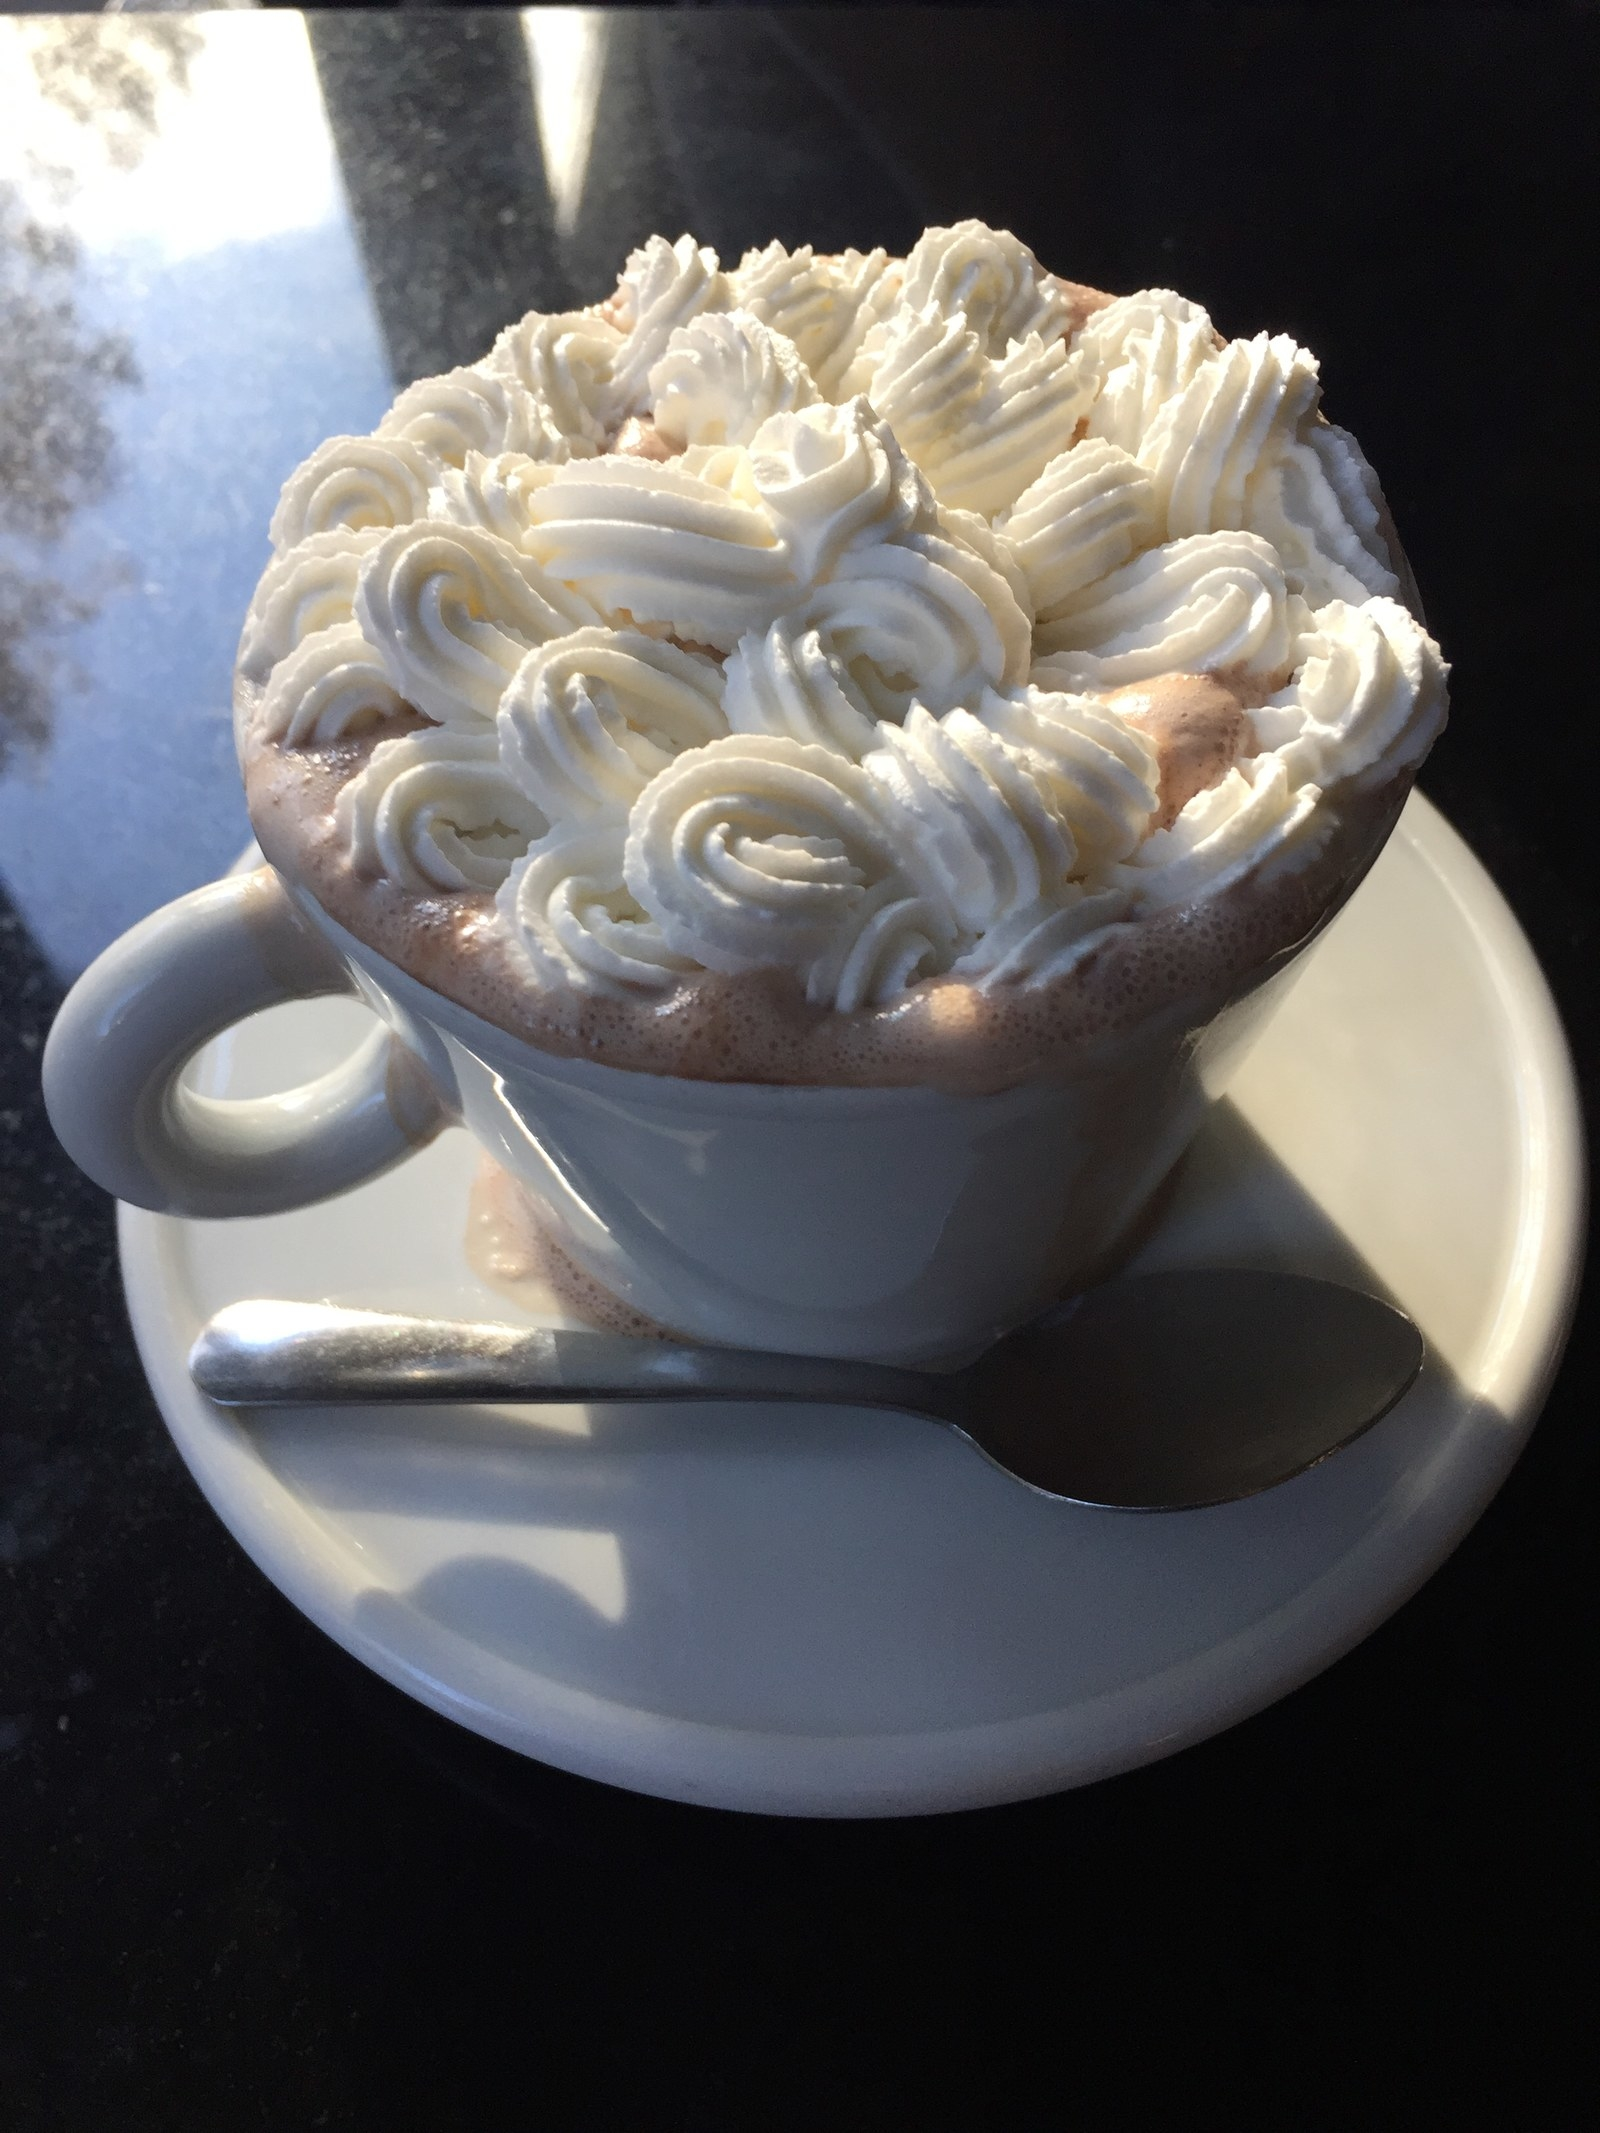 These Are The Best Hot Chocolates In NYC